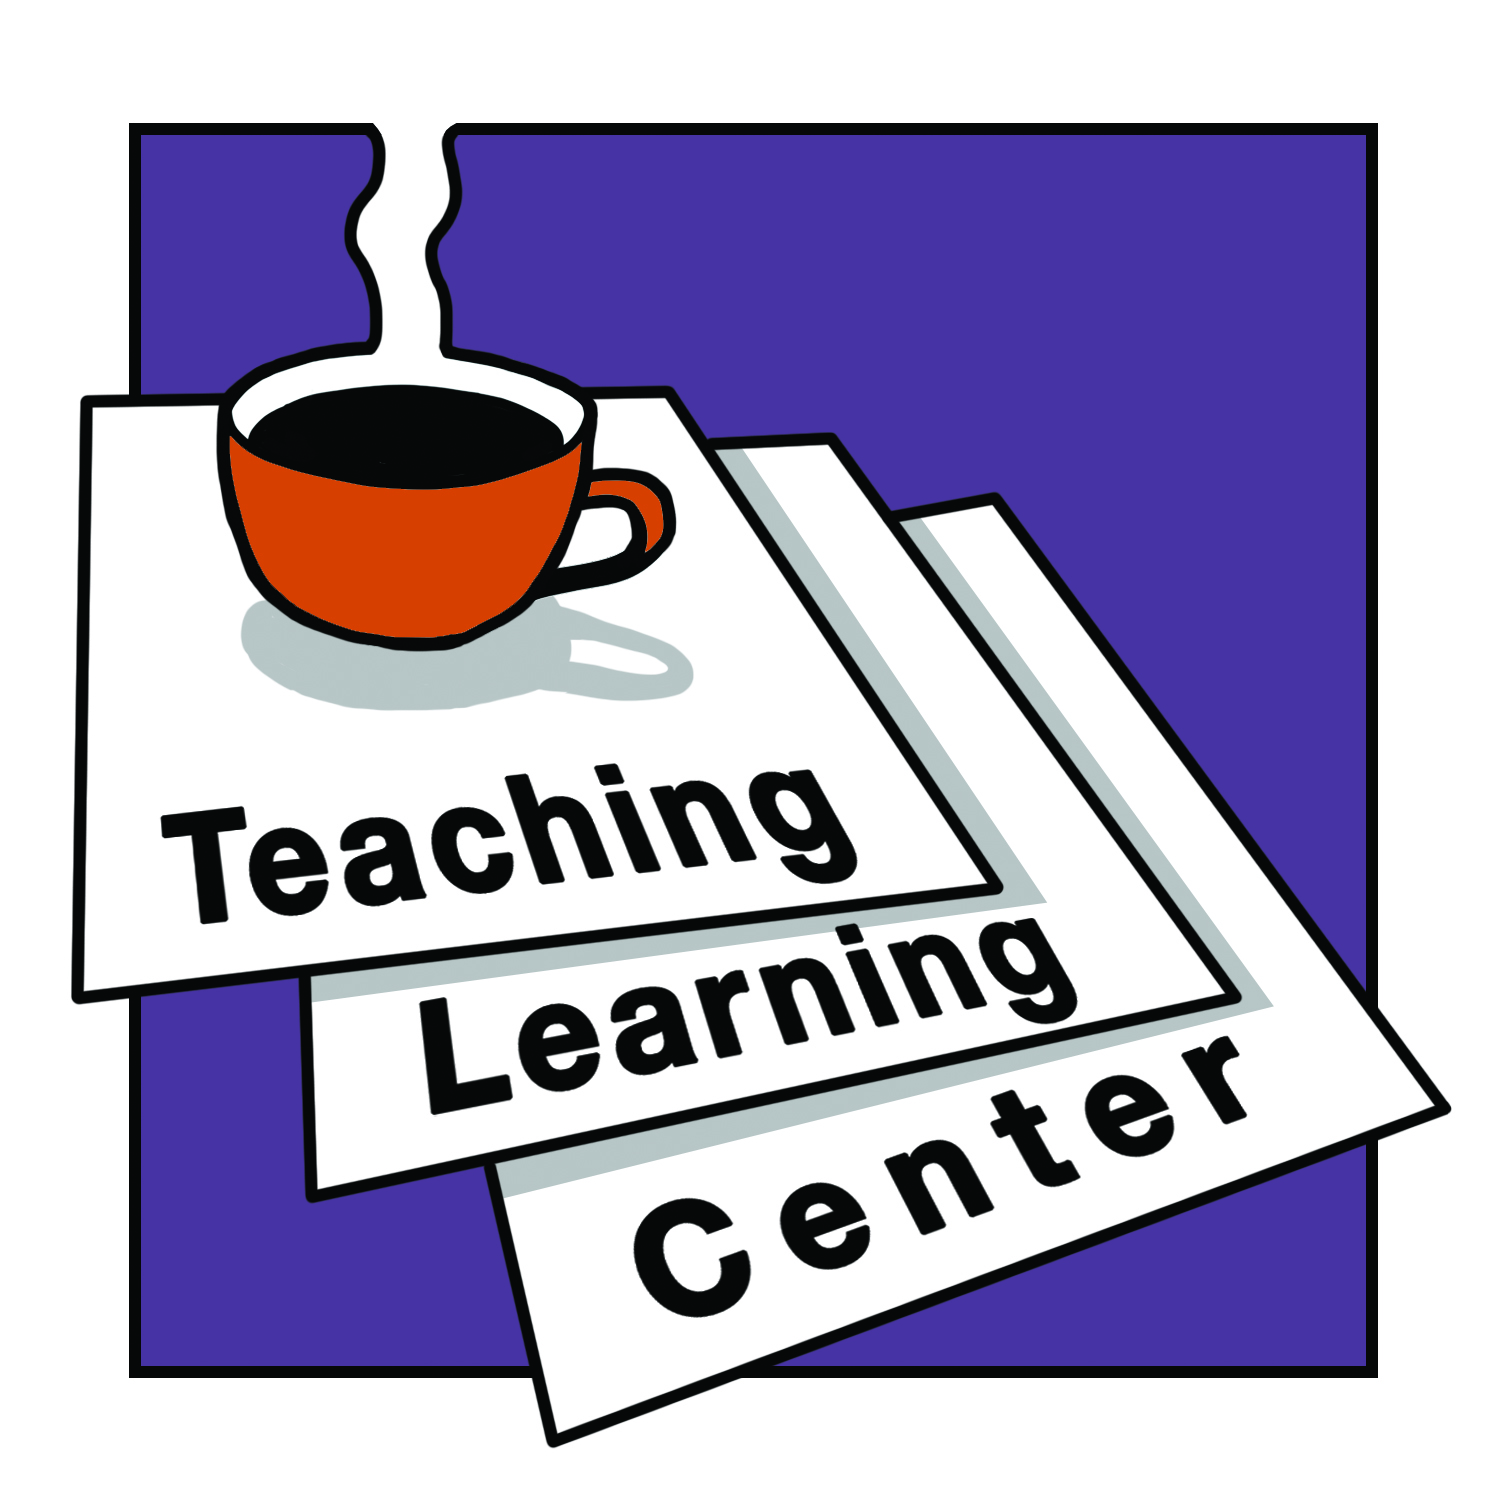 Managing Time and Responsibilities While Teaching Online